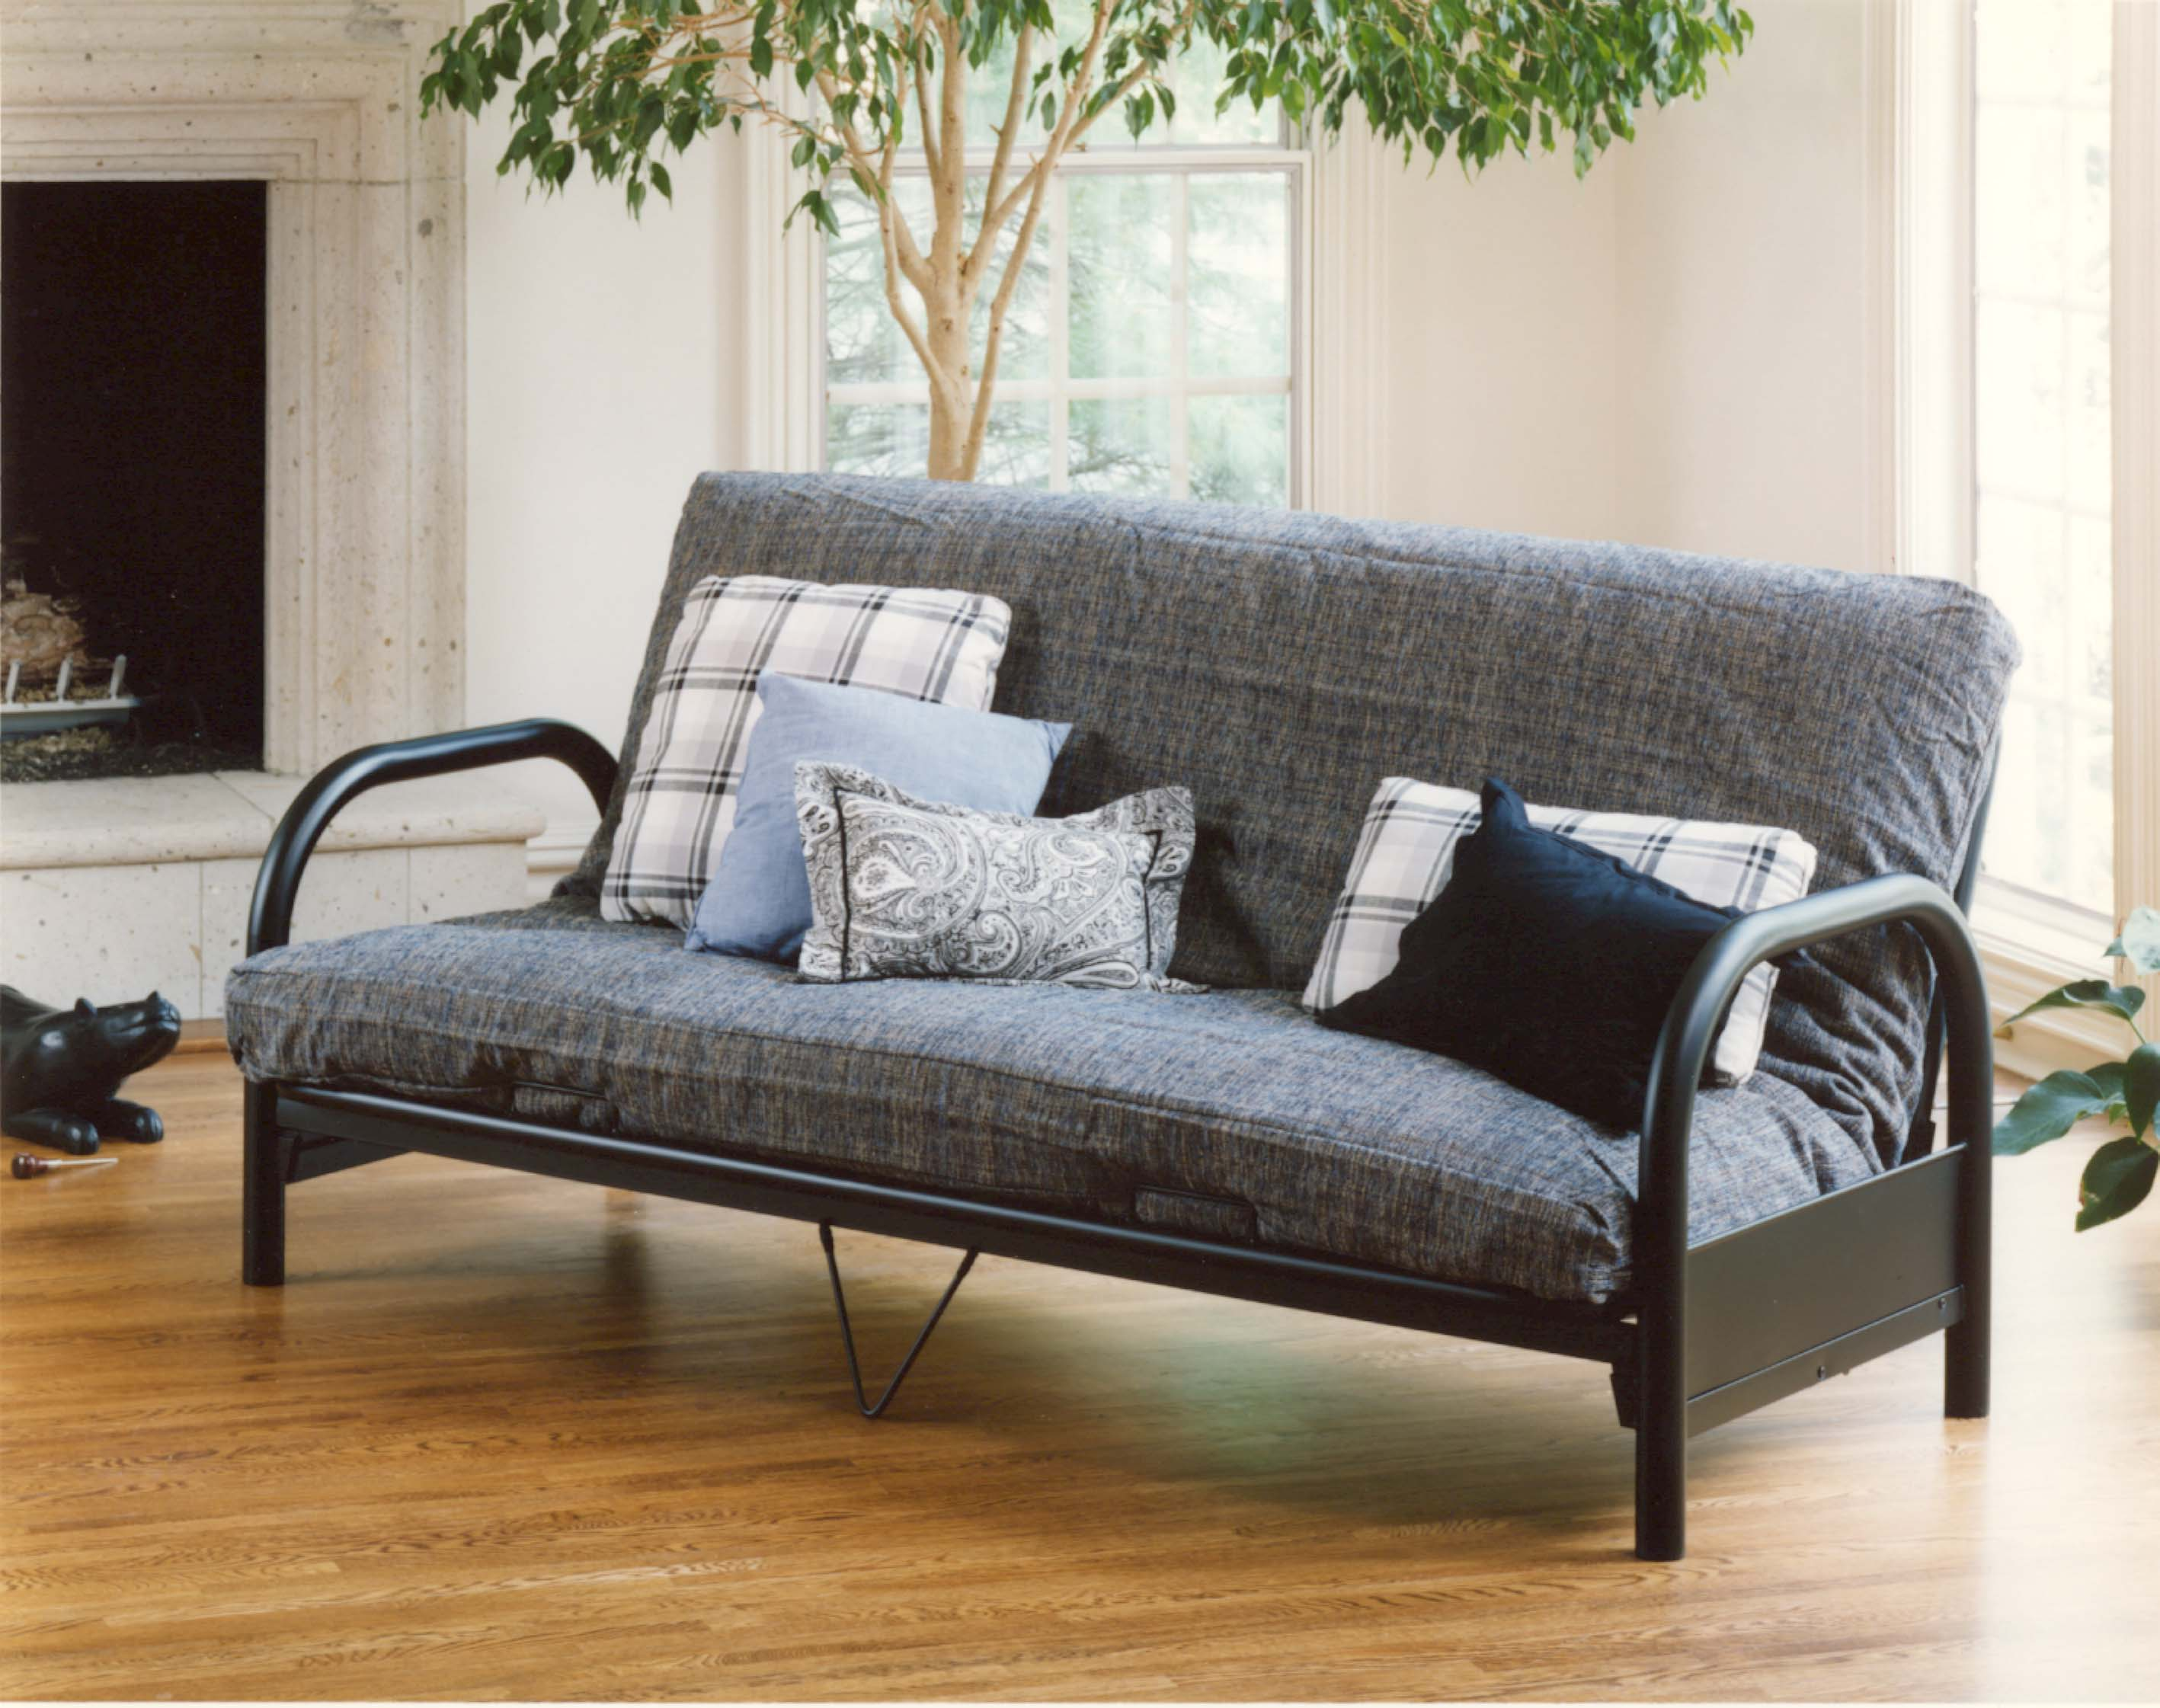 Full Futon with Curved Arms by Hillsdale